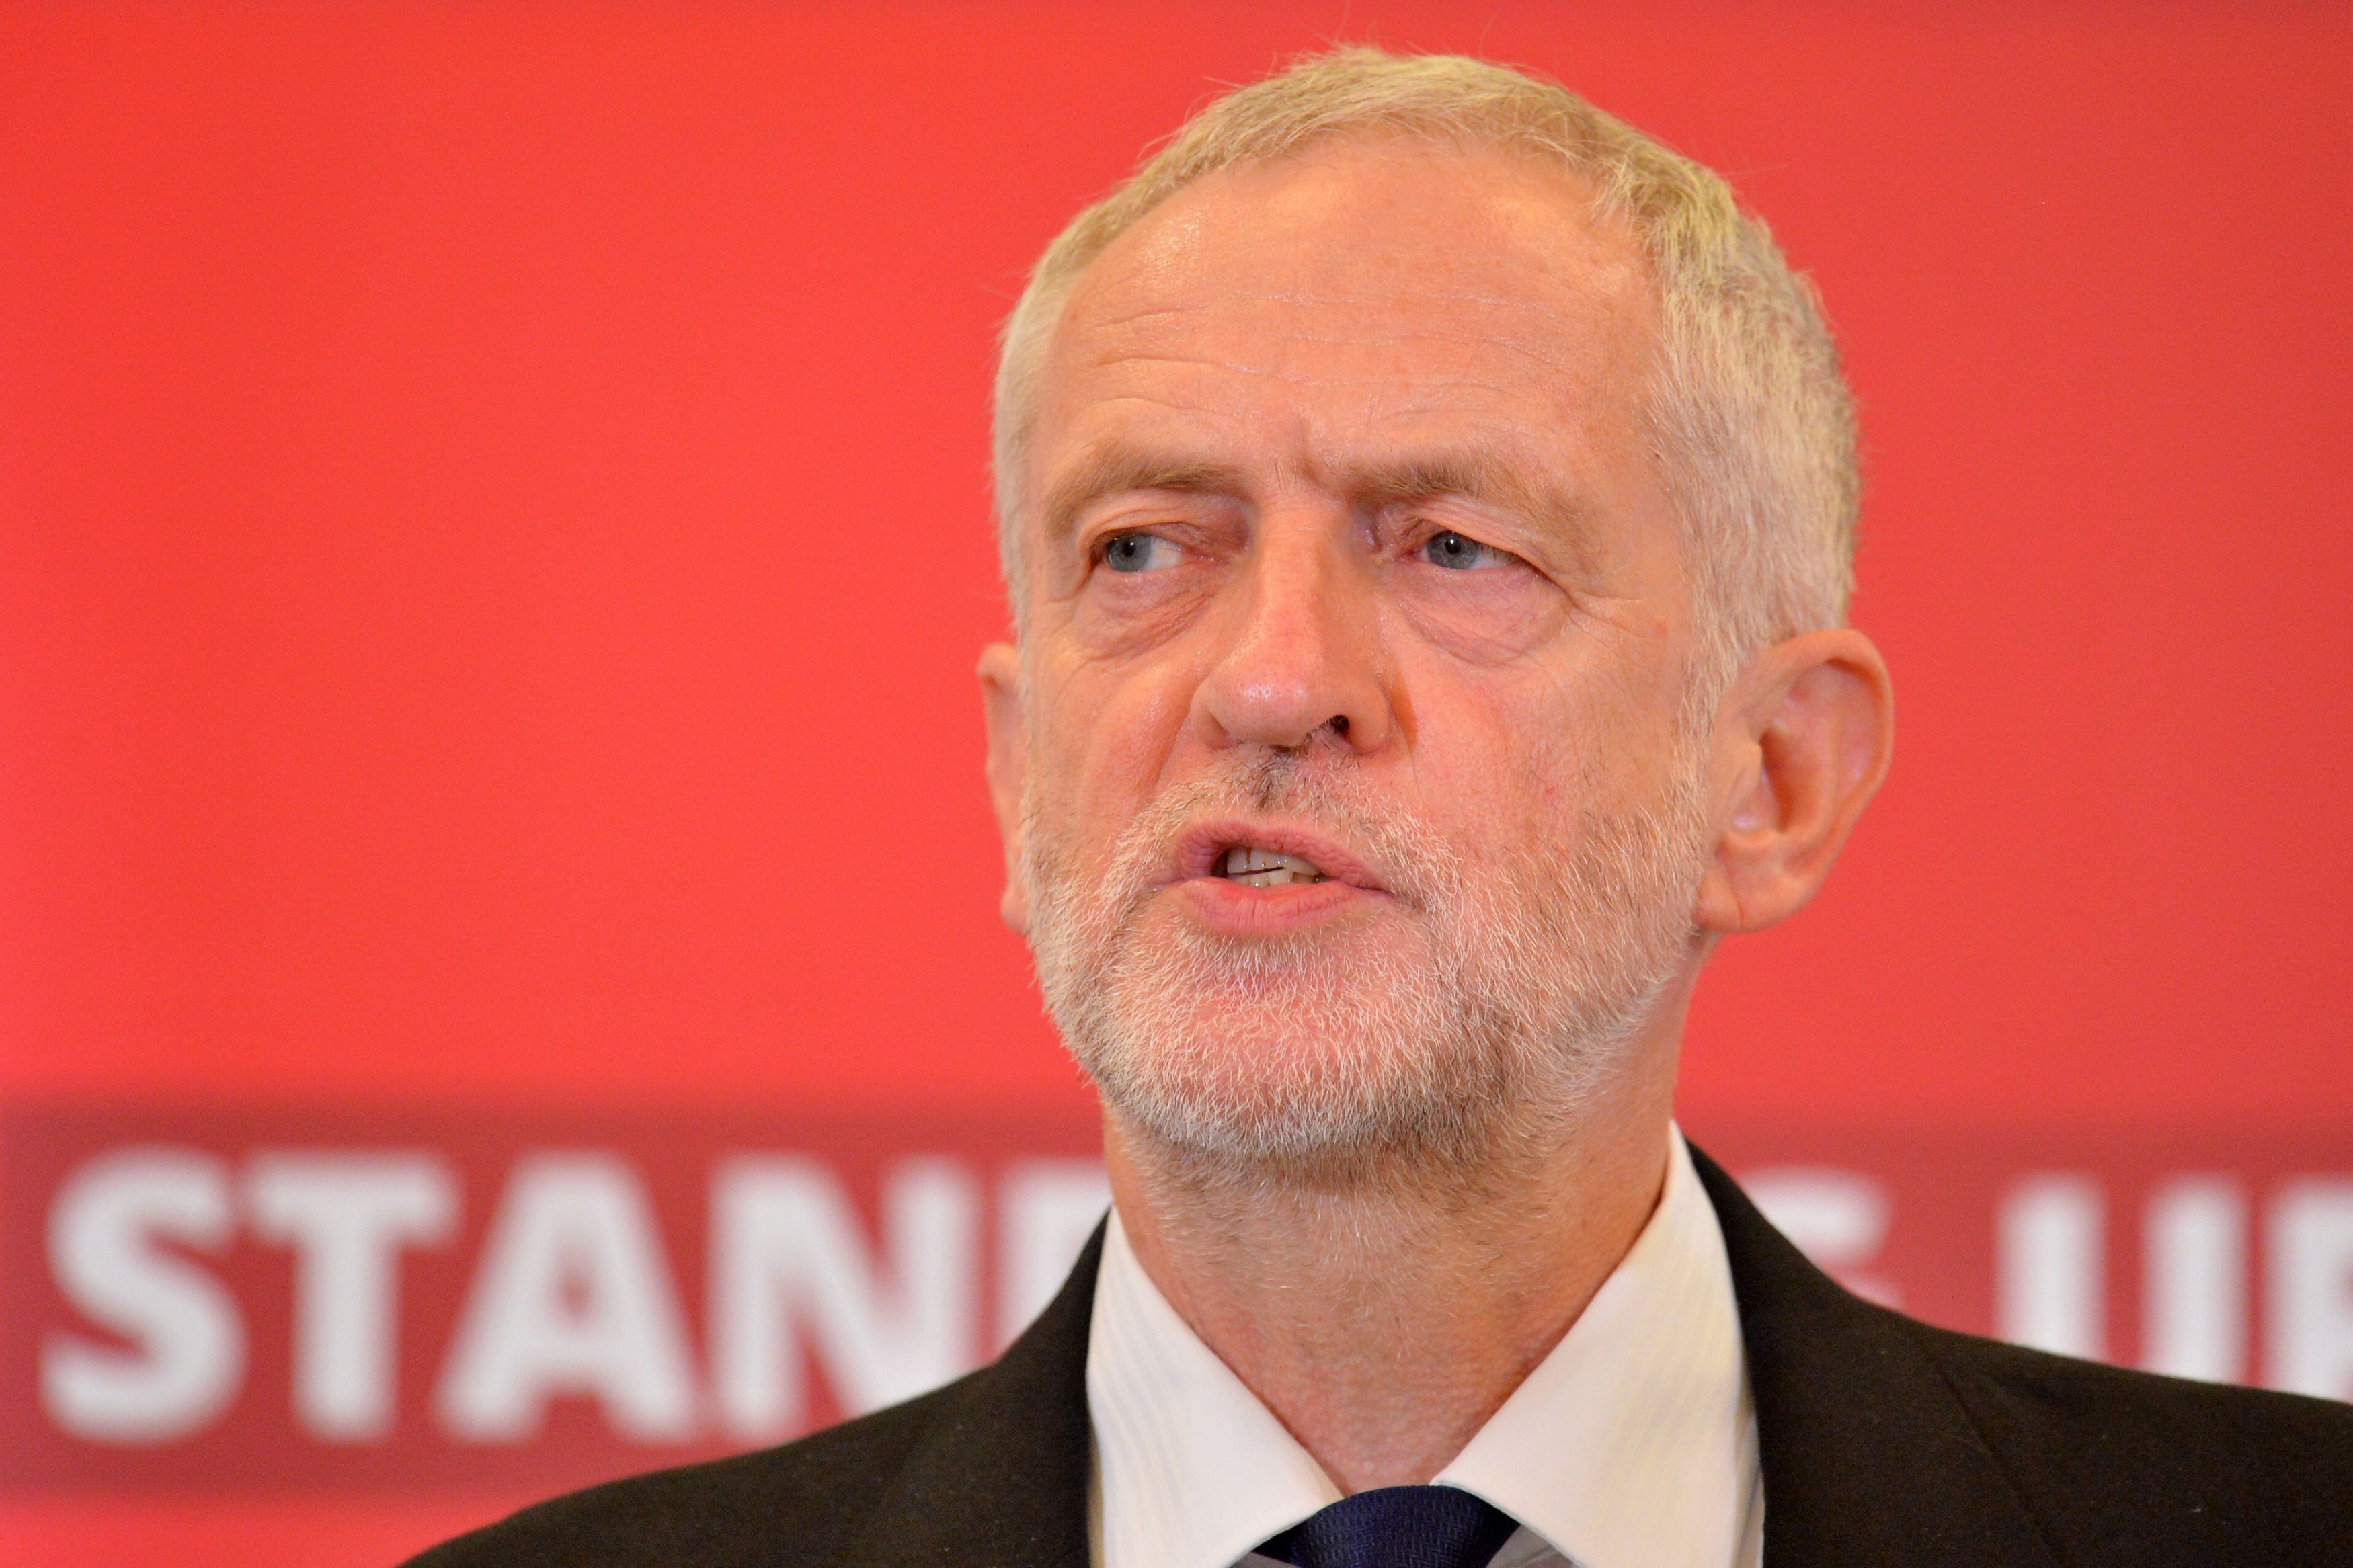 Labour membership has seen a huge surge since Corbyn's leadership came into